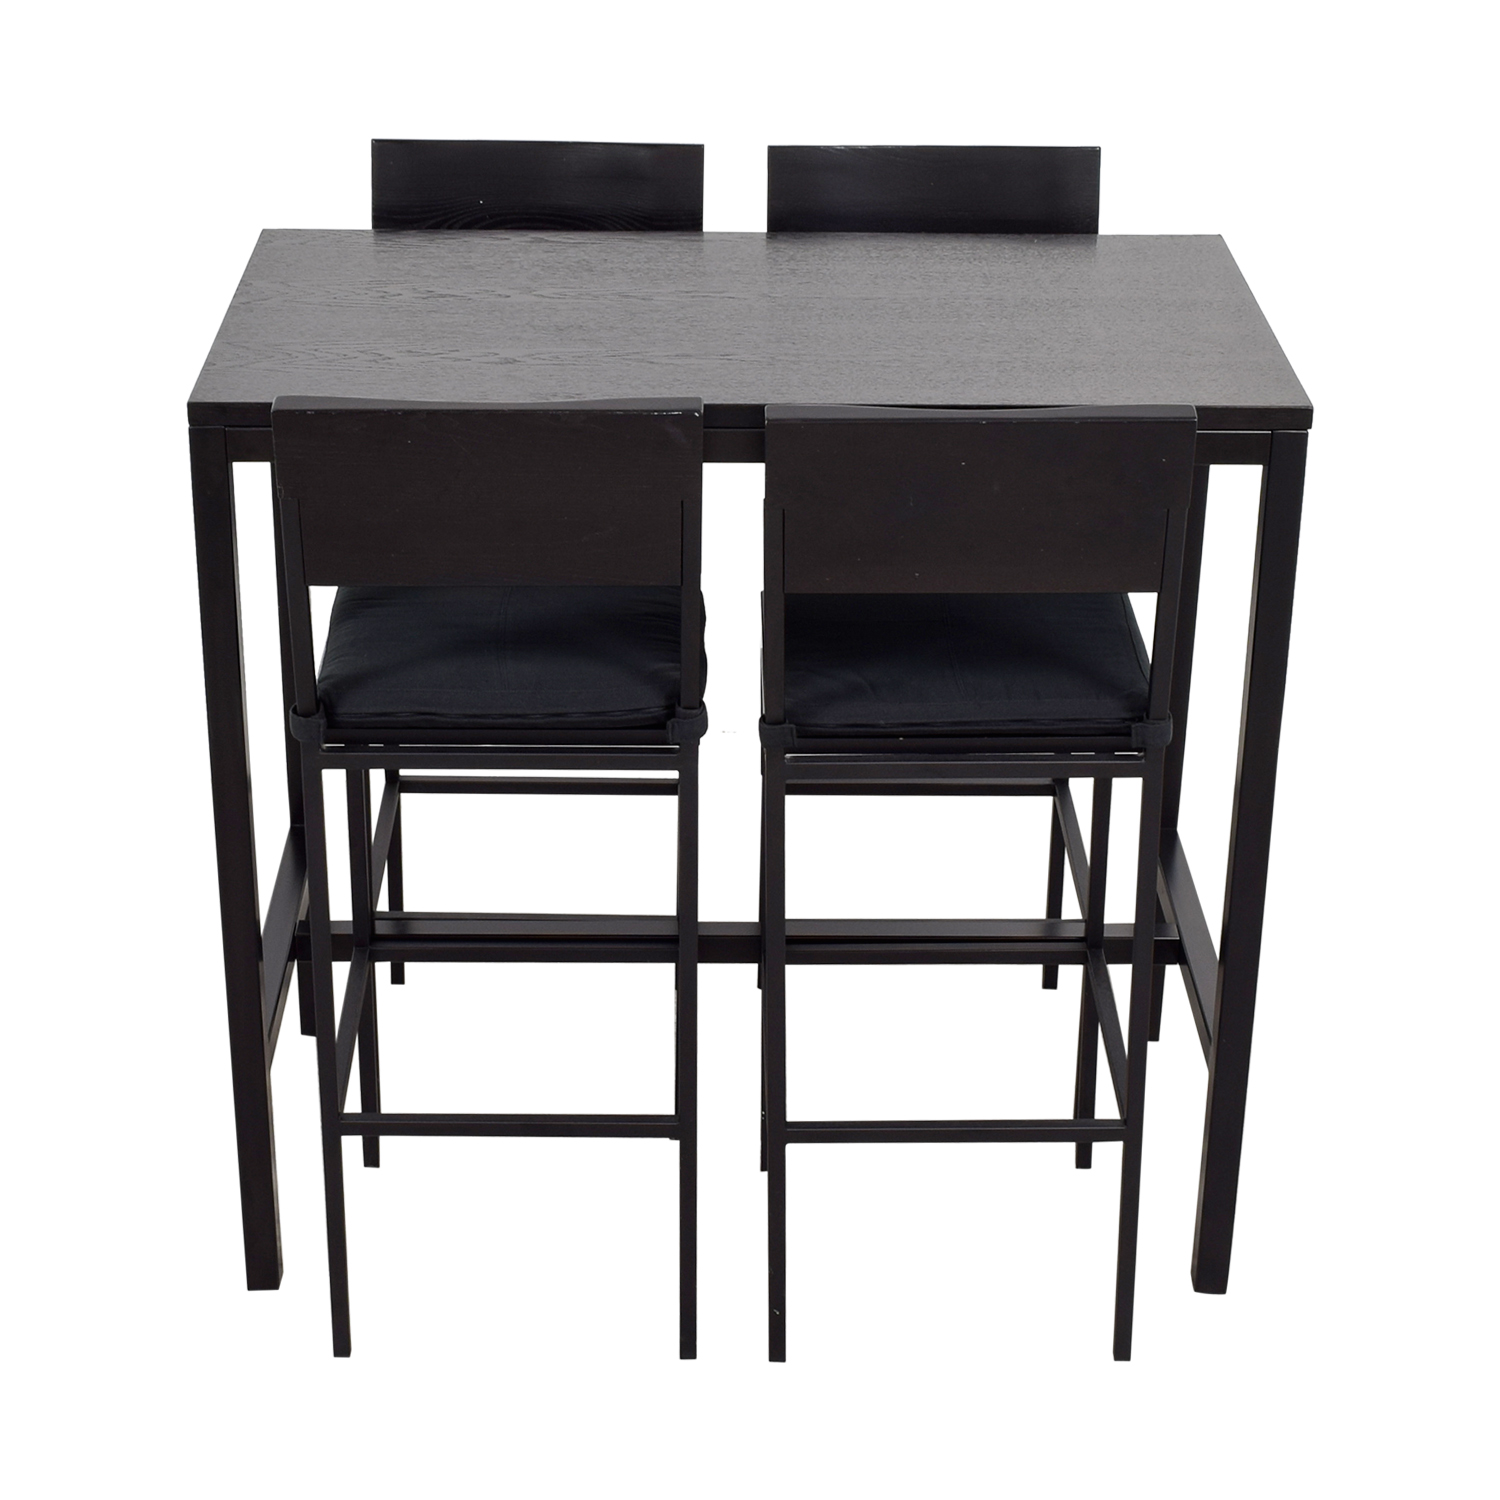 shop Crate & Barrel Black Tall Kitchen Dining Set Crate & Barrel Dining Sets